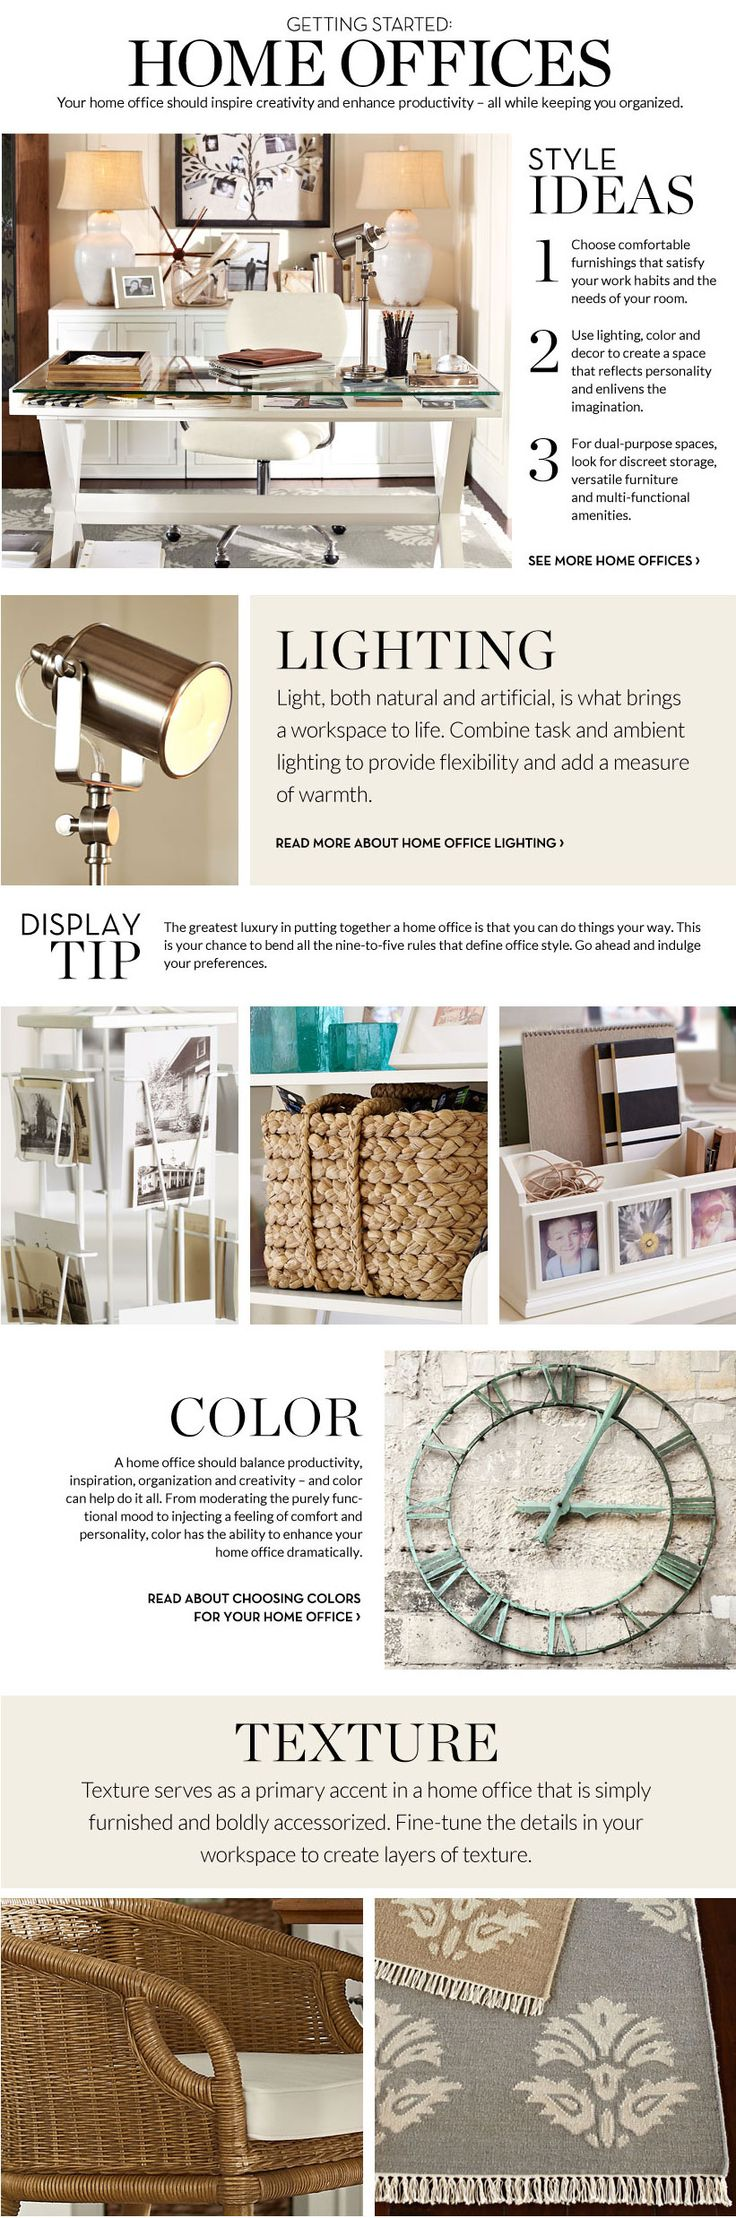 Home Office Decorating Ideas & Decorating Home Office | Pottery Barn #darlhq